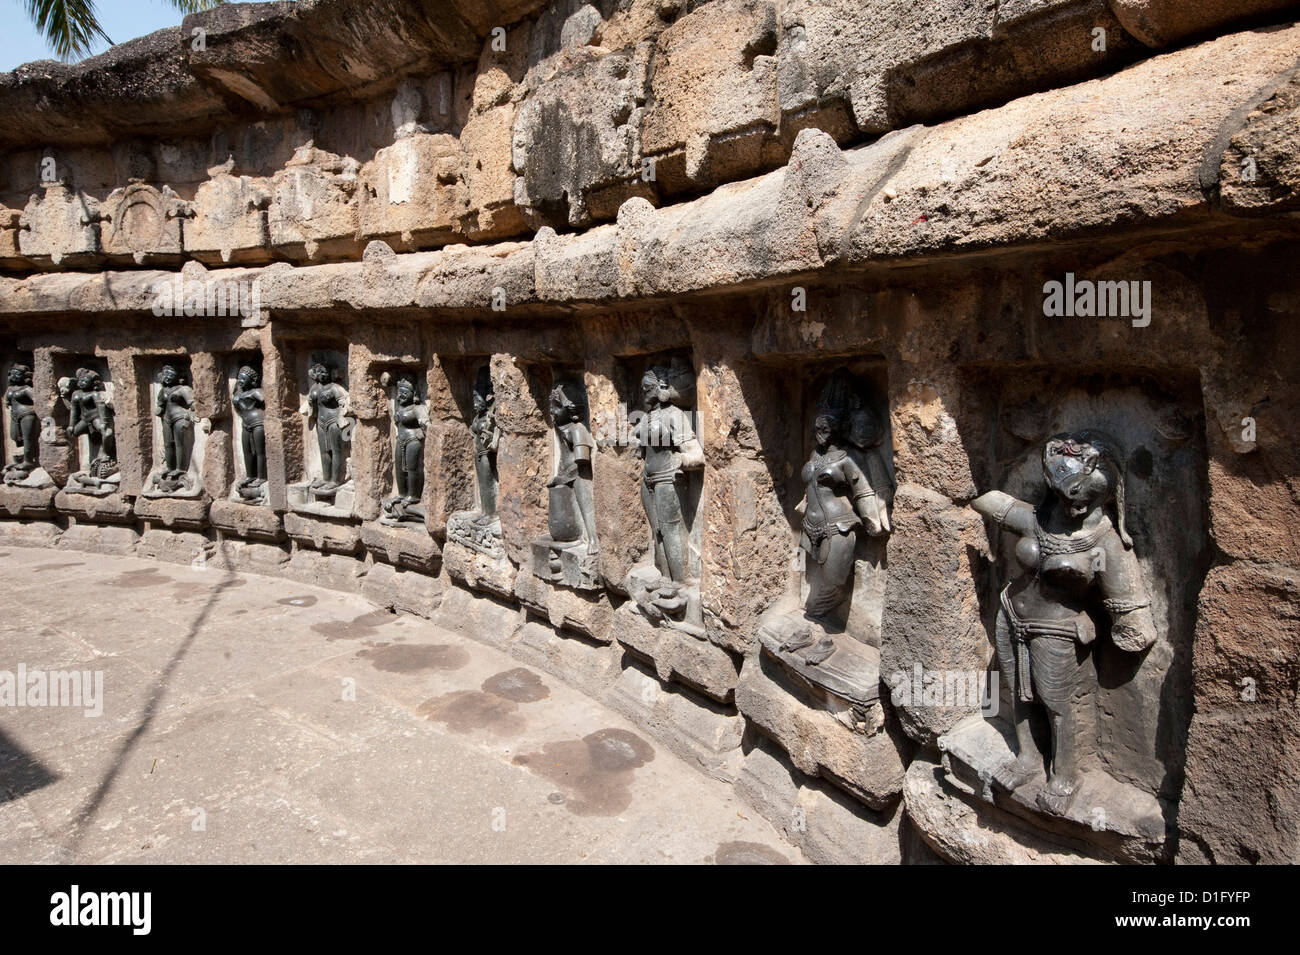 Some of the yoginis in the 9th century hypaethral Yogini Temple, worshipped for assisting goddess Durga, Hirapur, - Stock Image